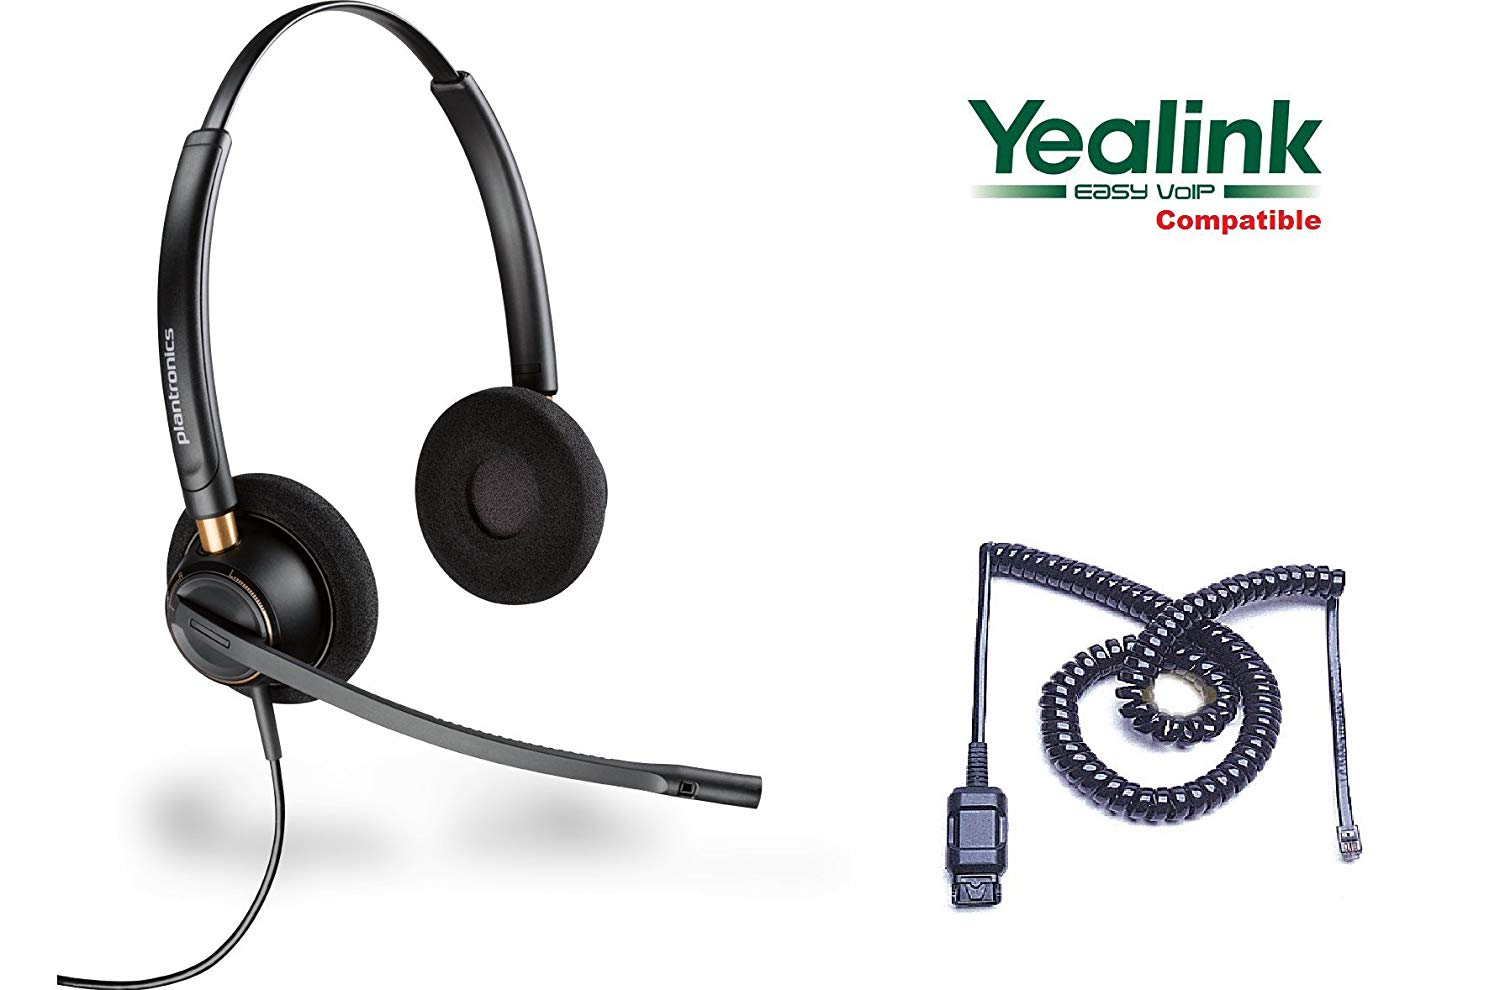 Plantronics HW520-YEA Yealink Certified Headset